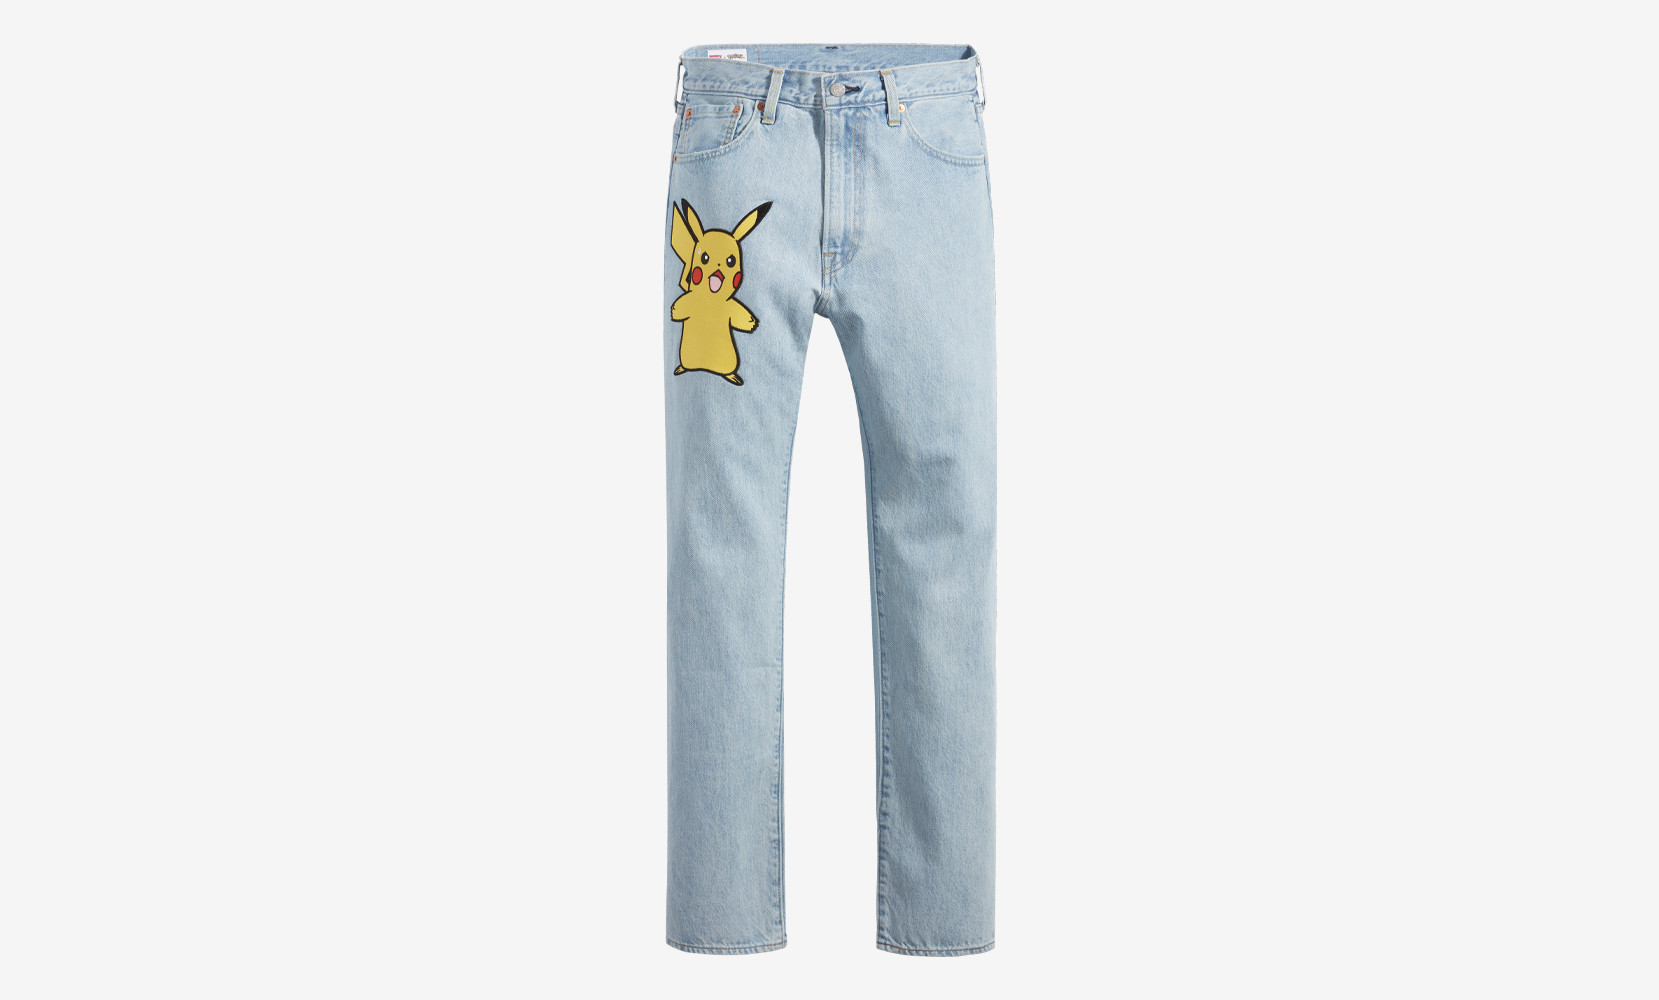 Pokémon x Levis capsule collection